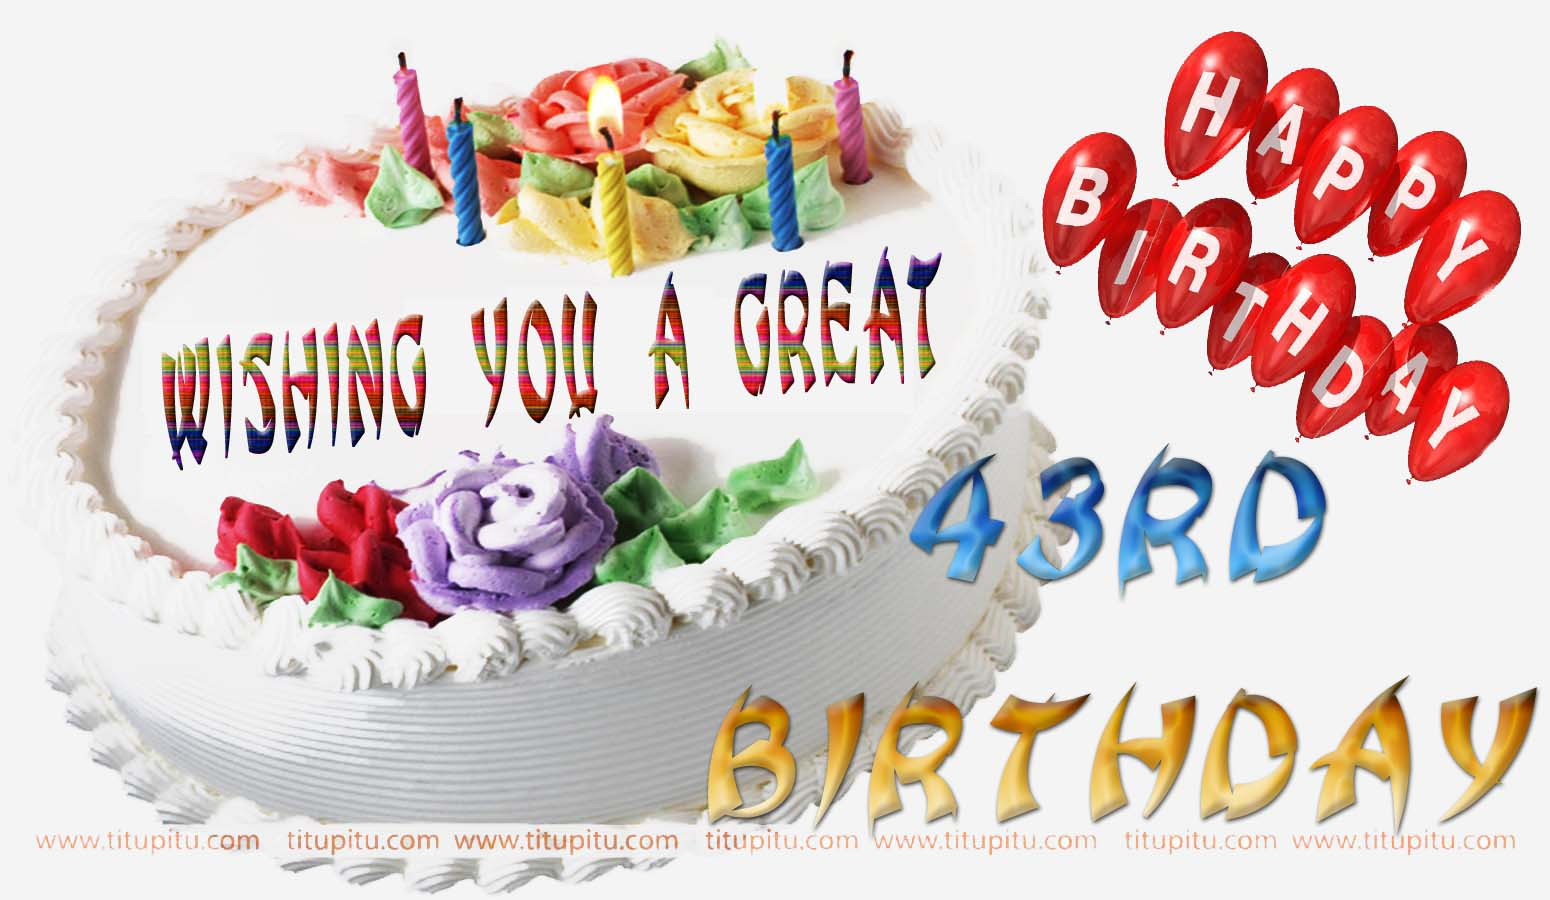 Birthday Cake Images And Msg : 43rd birthday wishes message and wallpaper for everyone ...